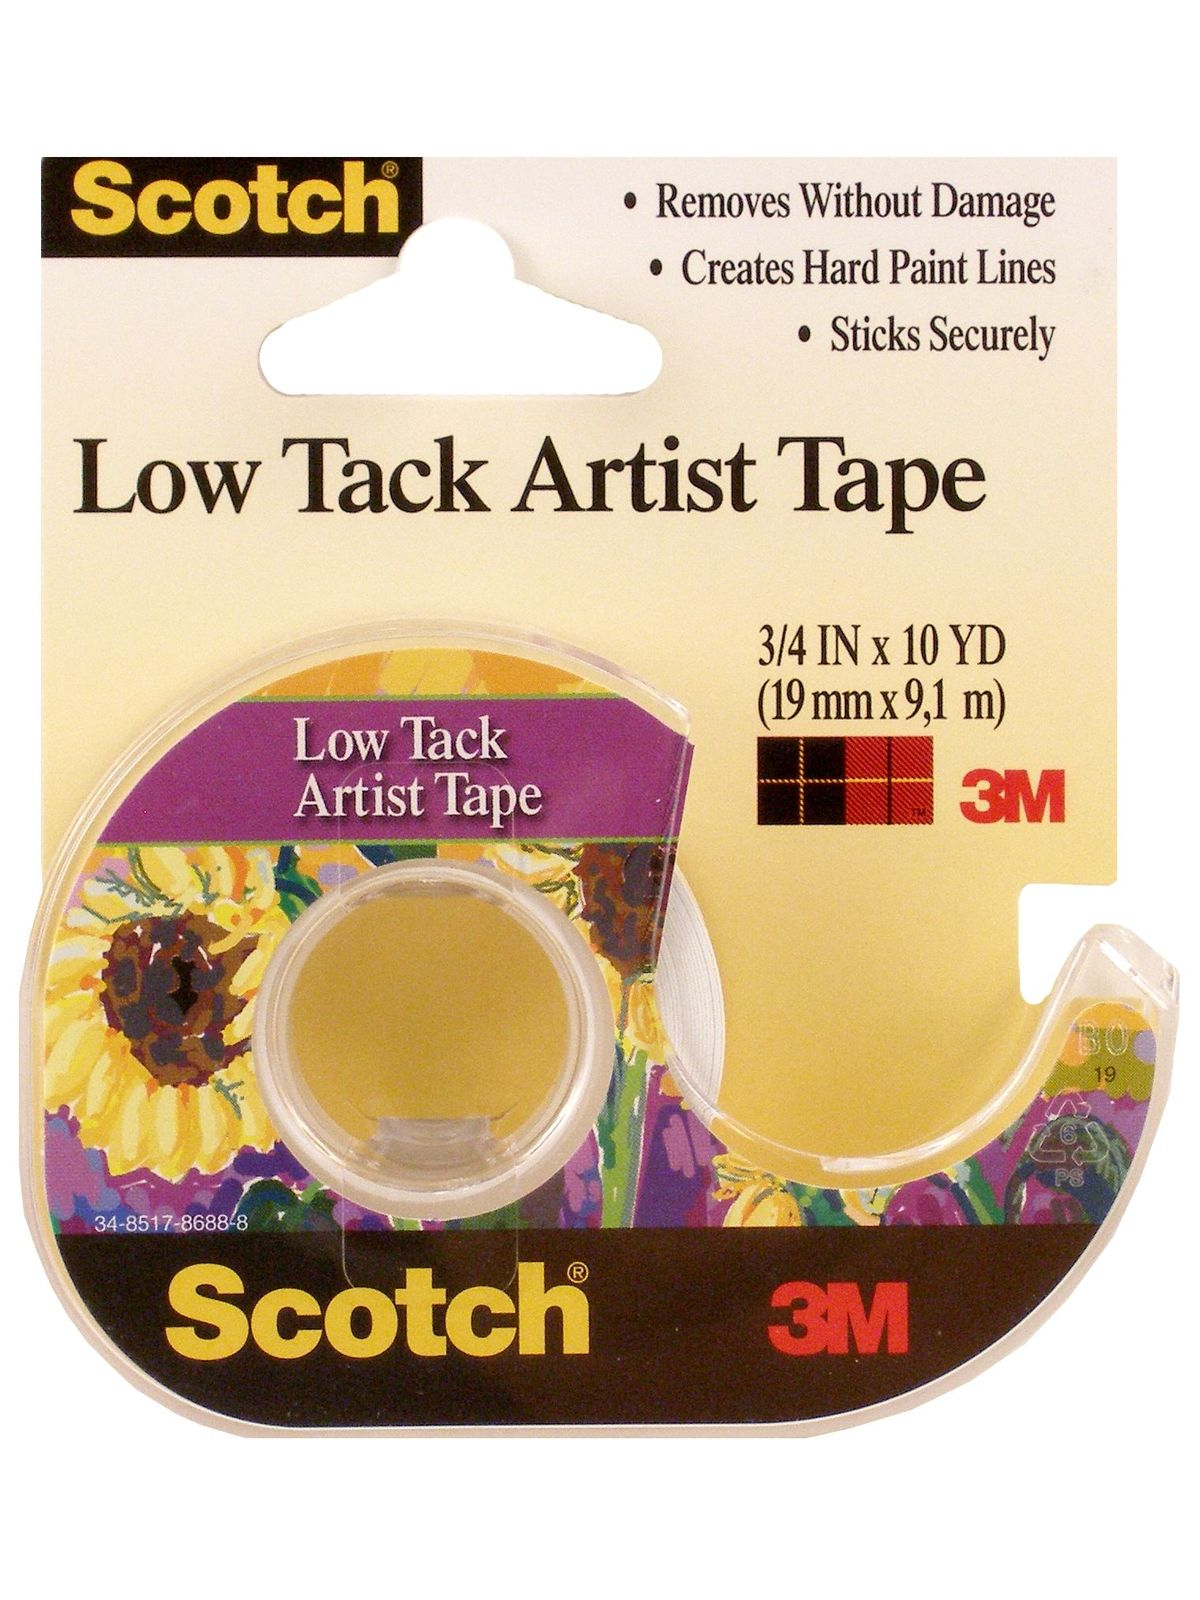 Scotch Low Tack Artist Tape